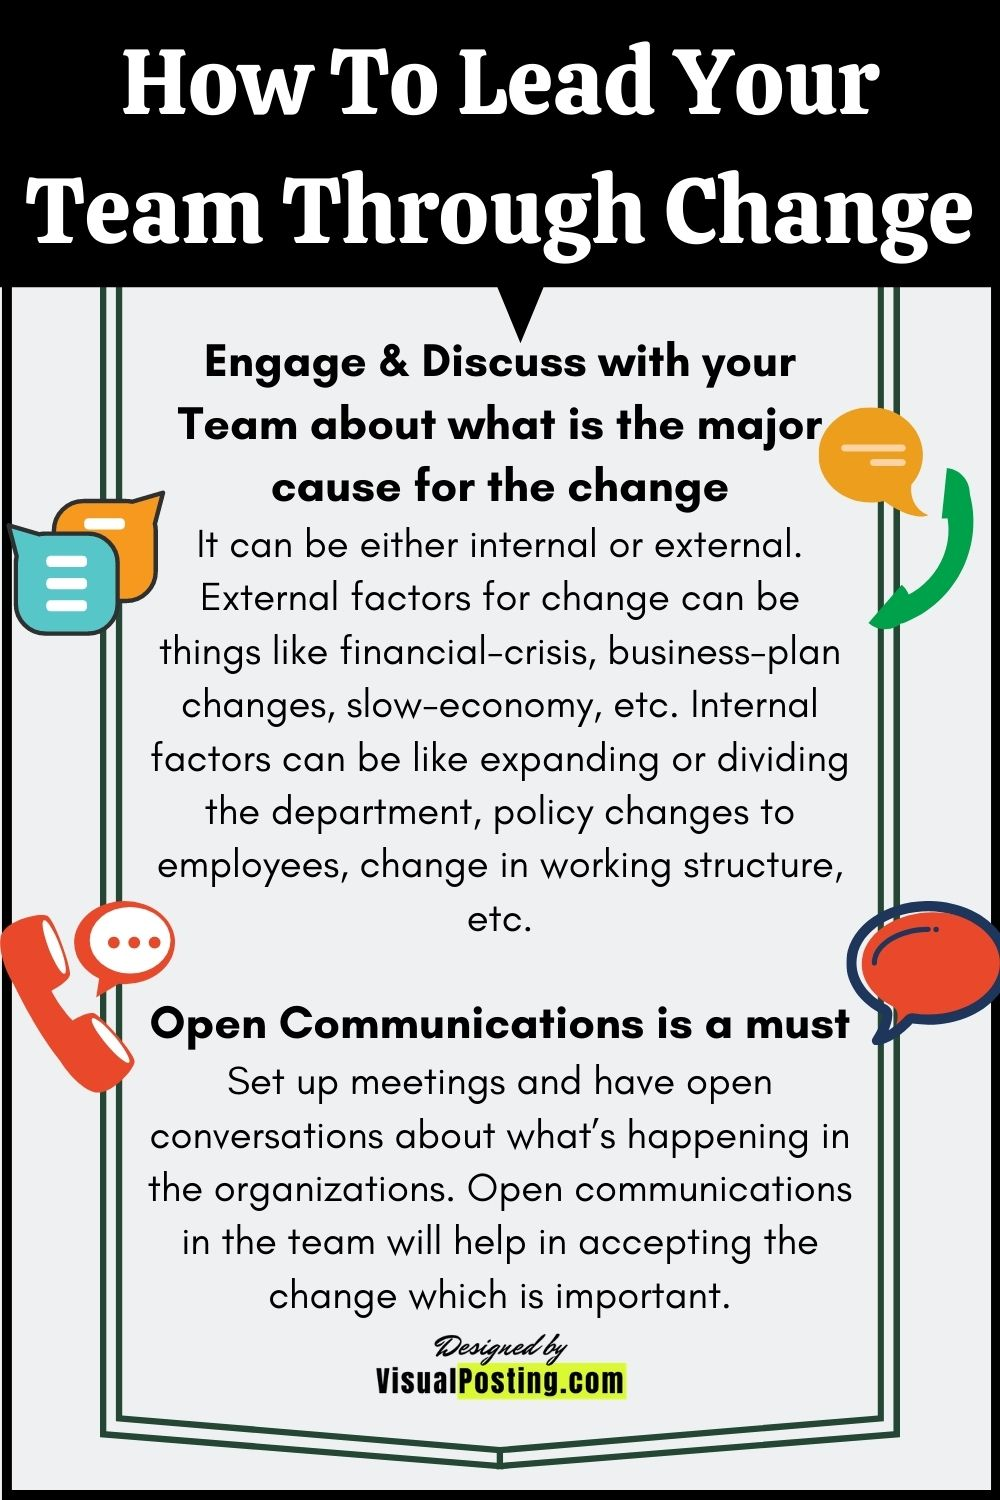 How To Lead Your Team Through Change.jpg